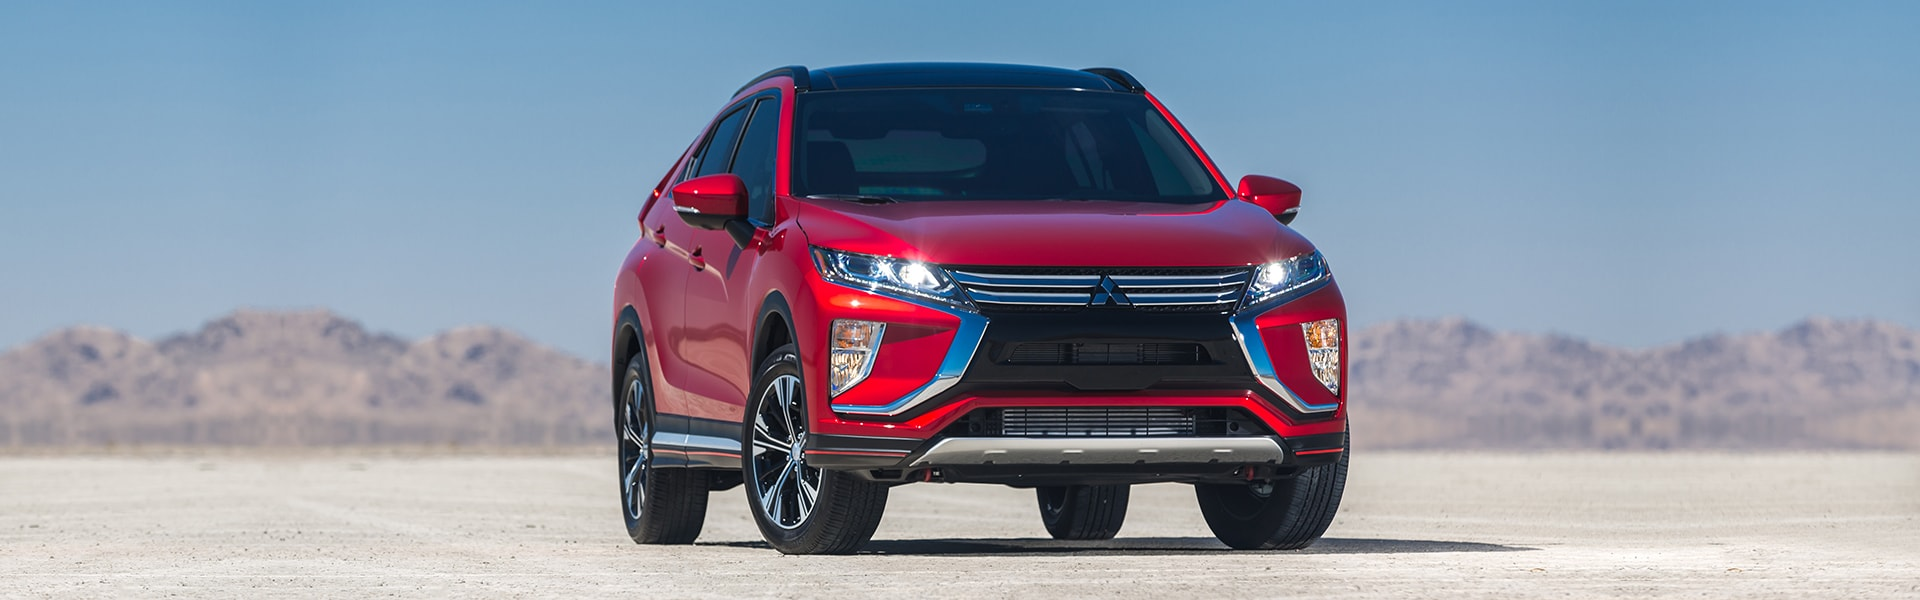 Rally-Red-Exterior-2018-Mitsubishi-Eclipse-Cross-01-d.jpg